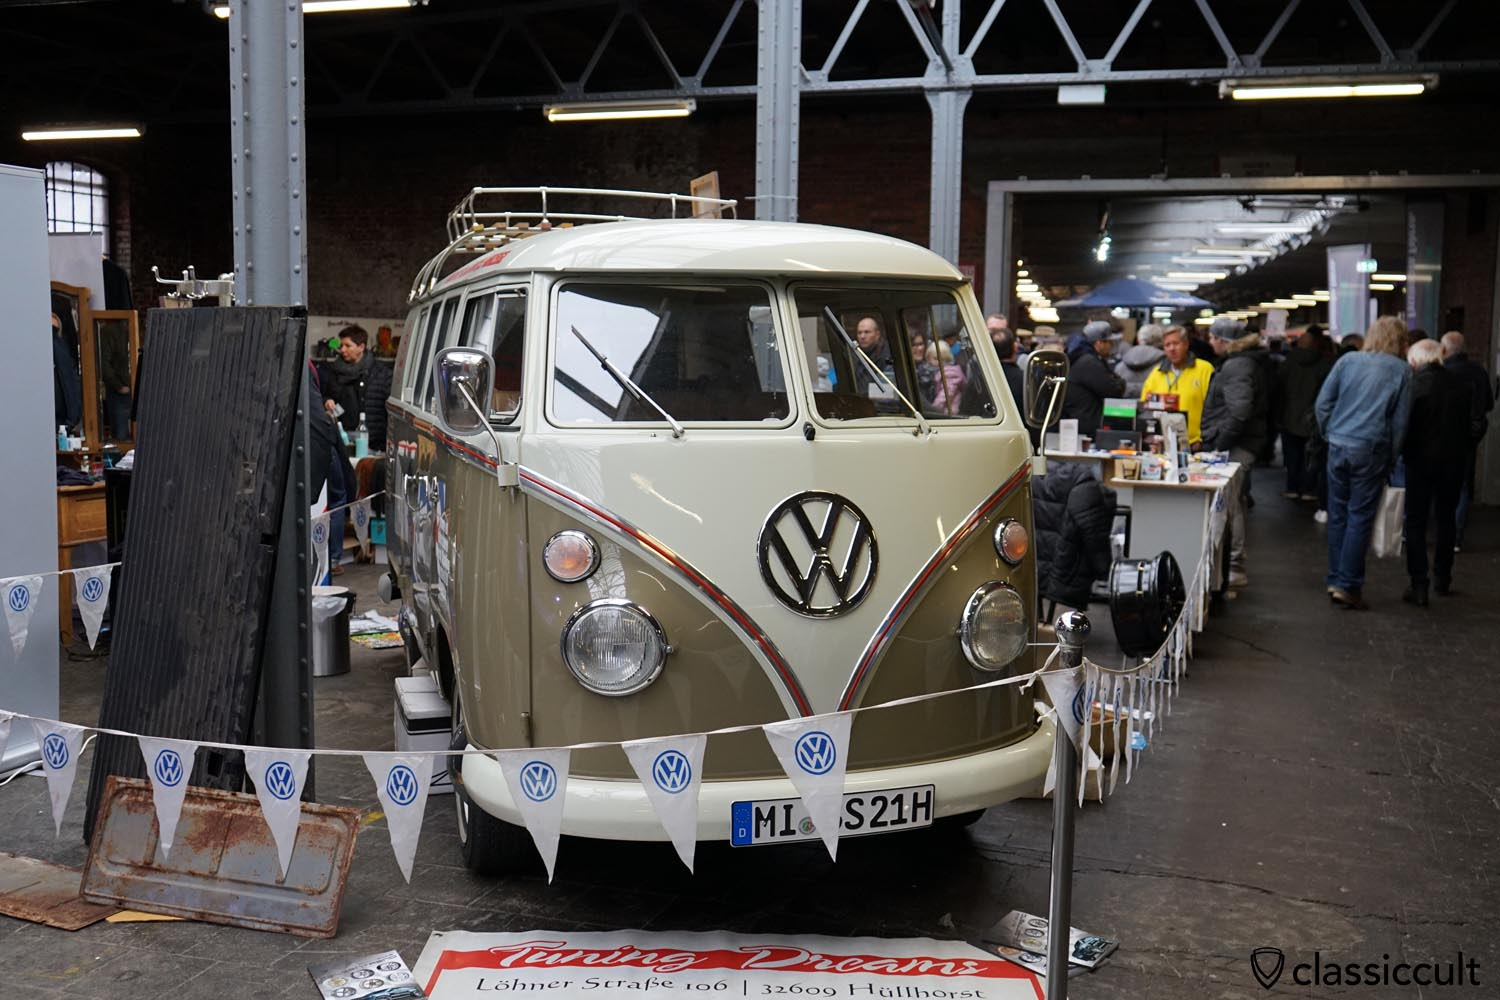 VW Kaefer Wintertreffen Herford Germany 2019